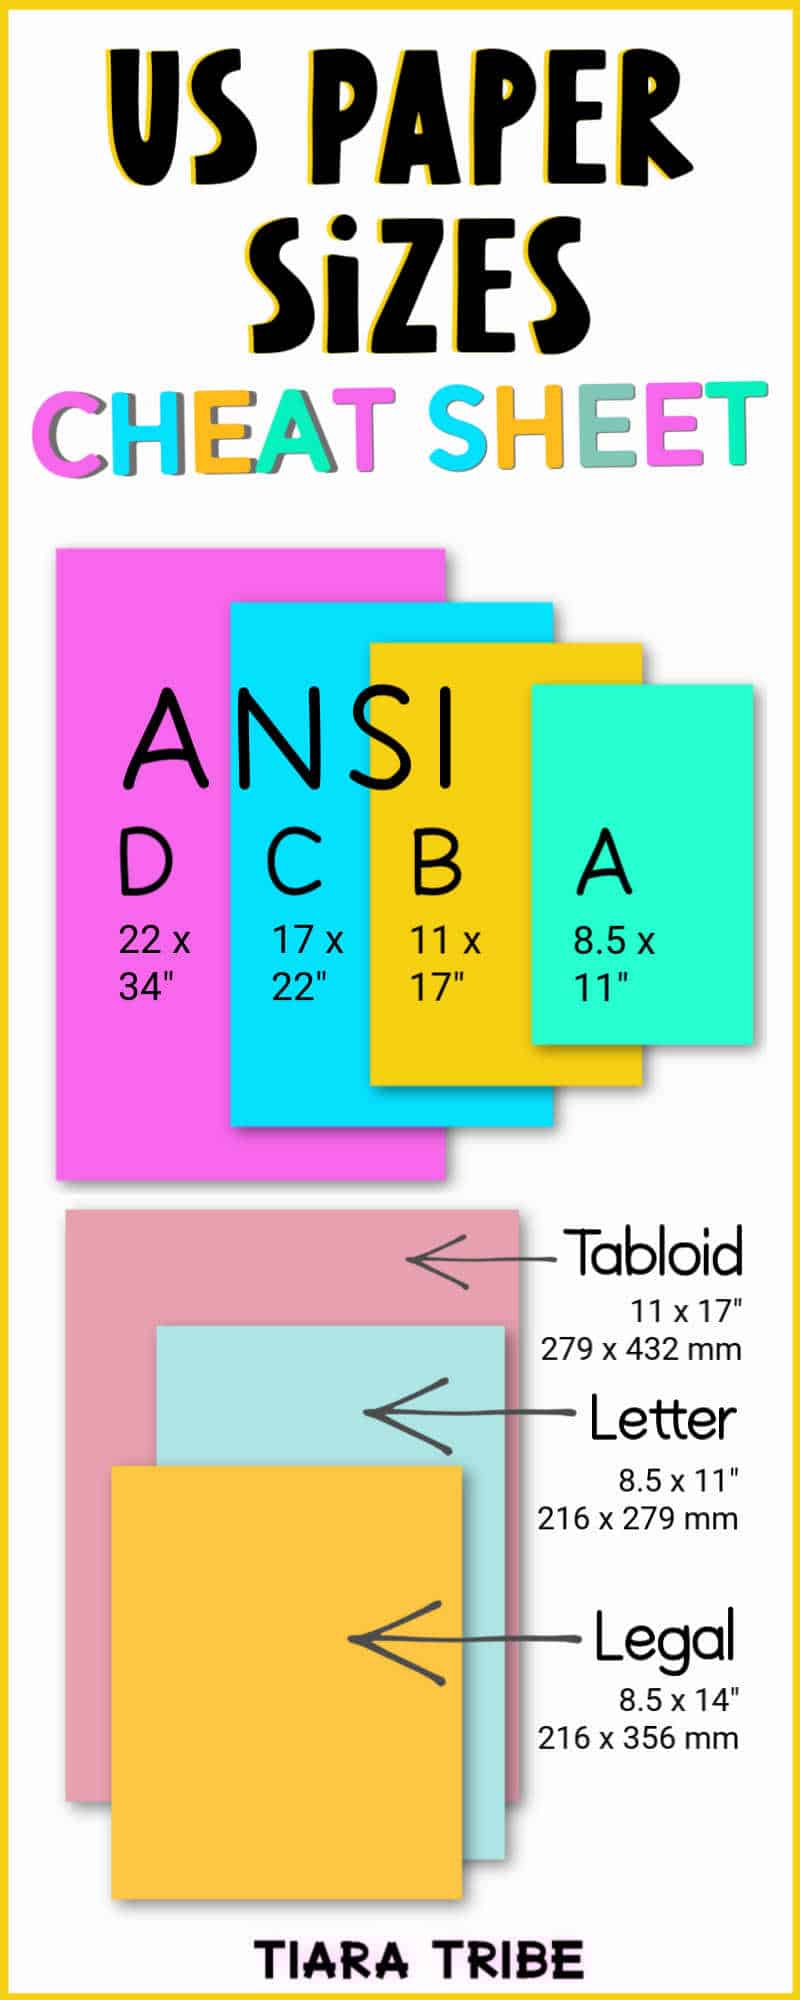 Paper sizes chart with US standard paper sizes